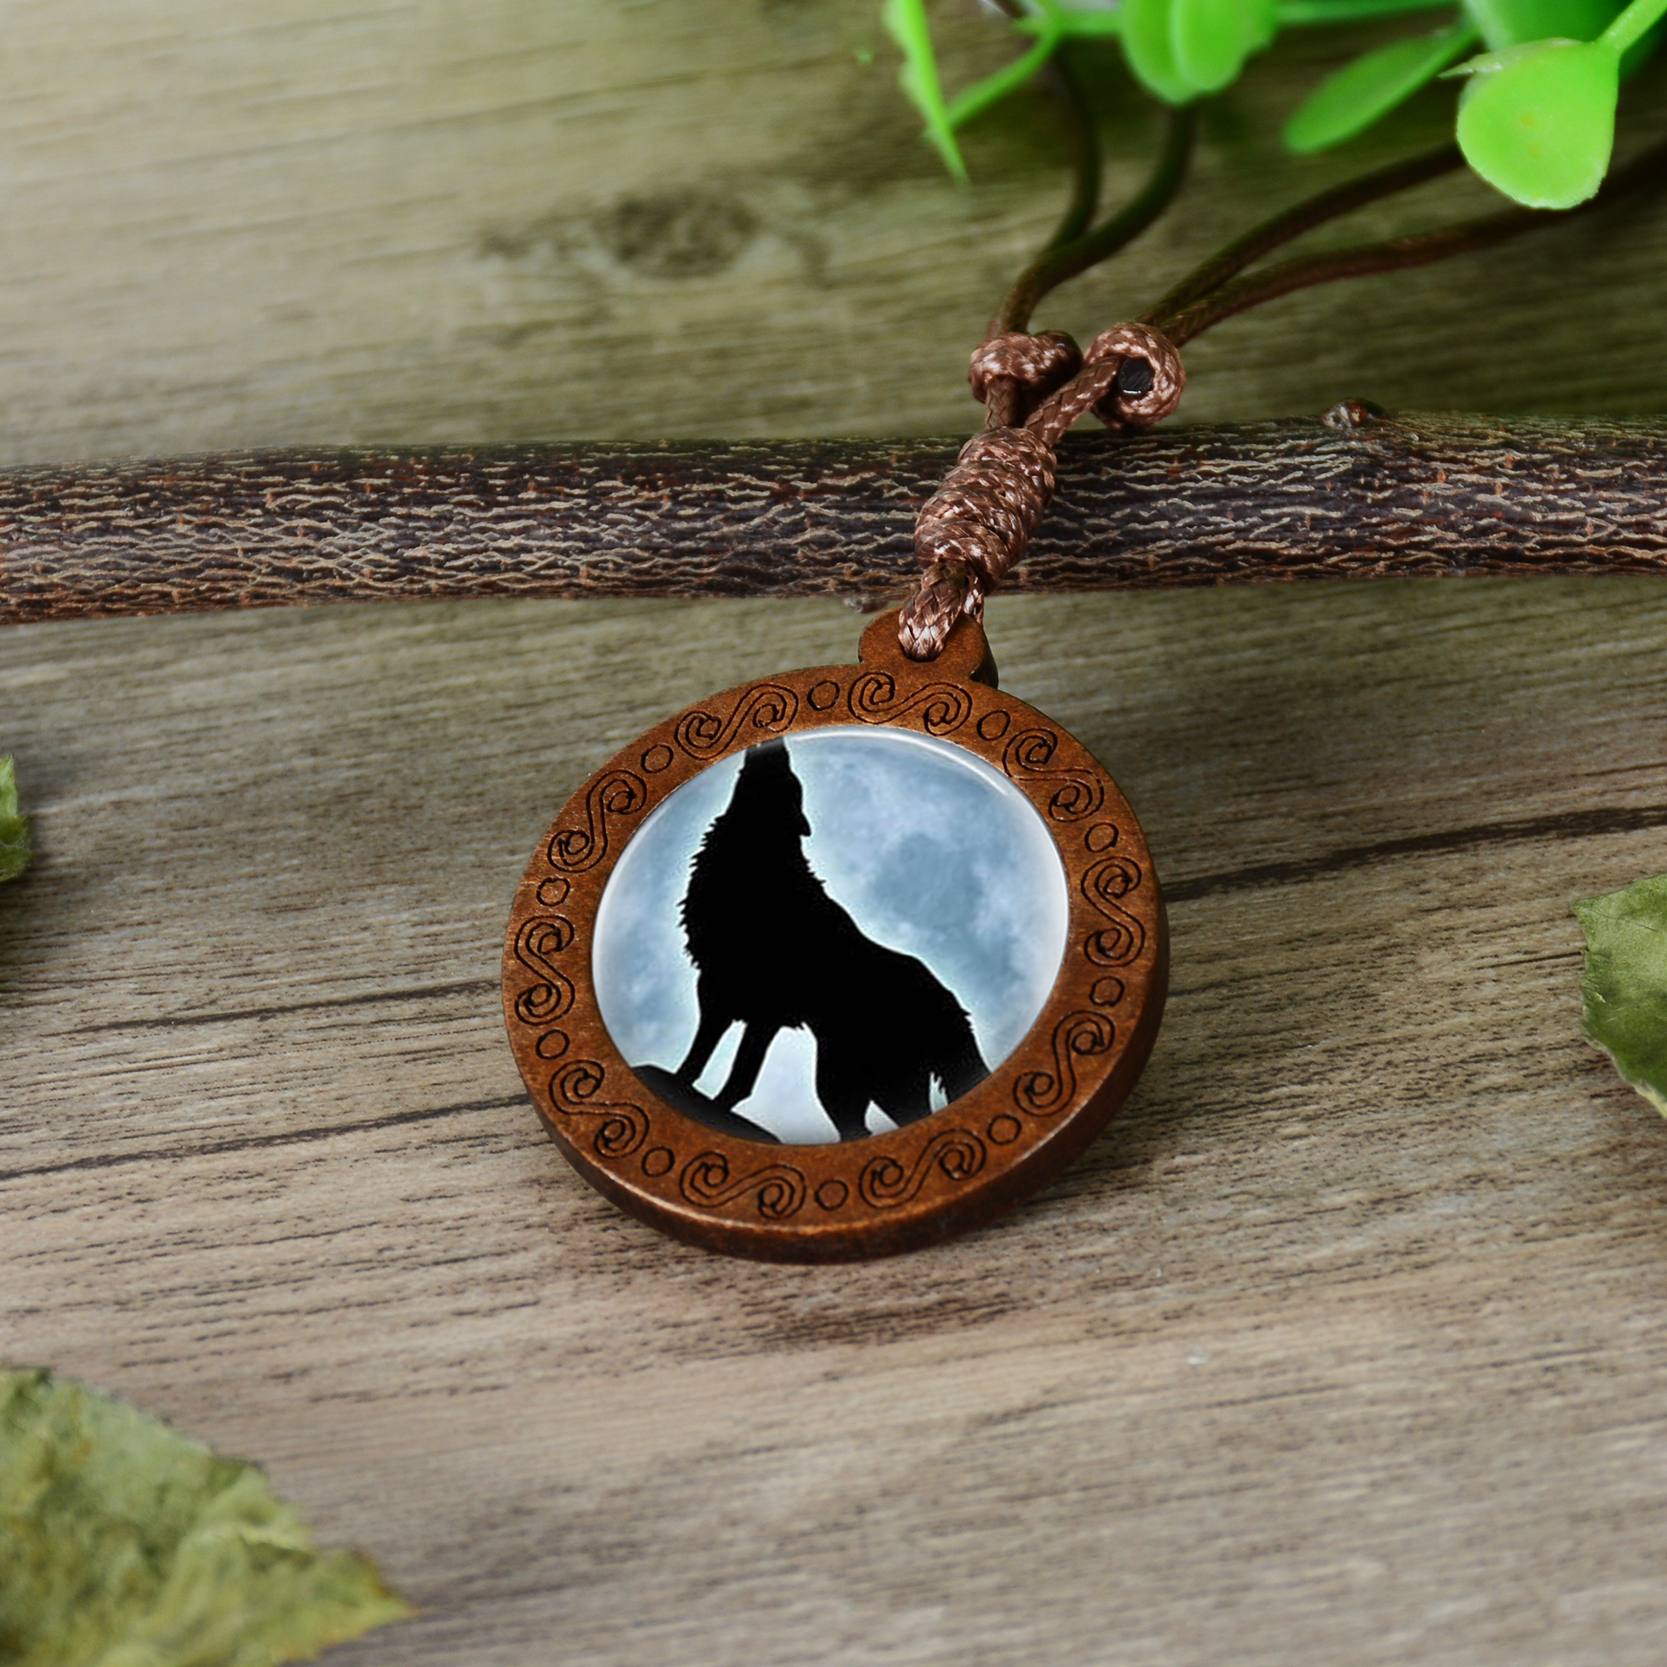 Wooden Glass Cabochon Necklace Wolf and Moon Pendent & Chain CLOVER JEWELLERY